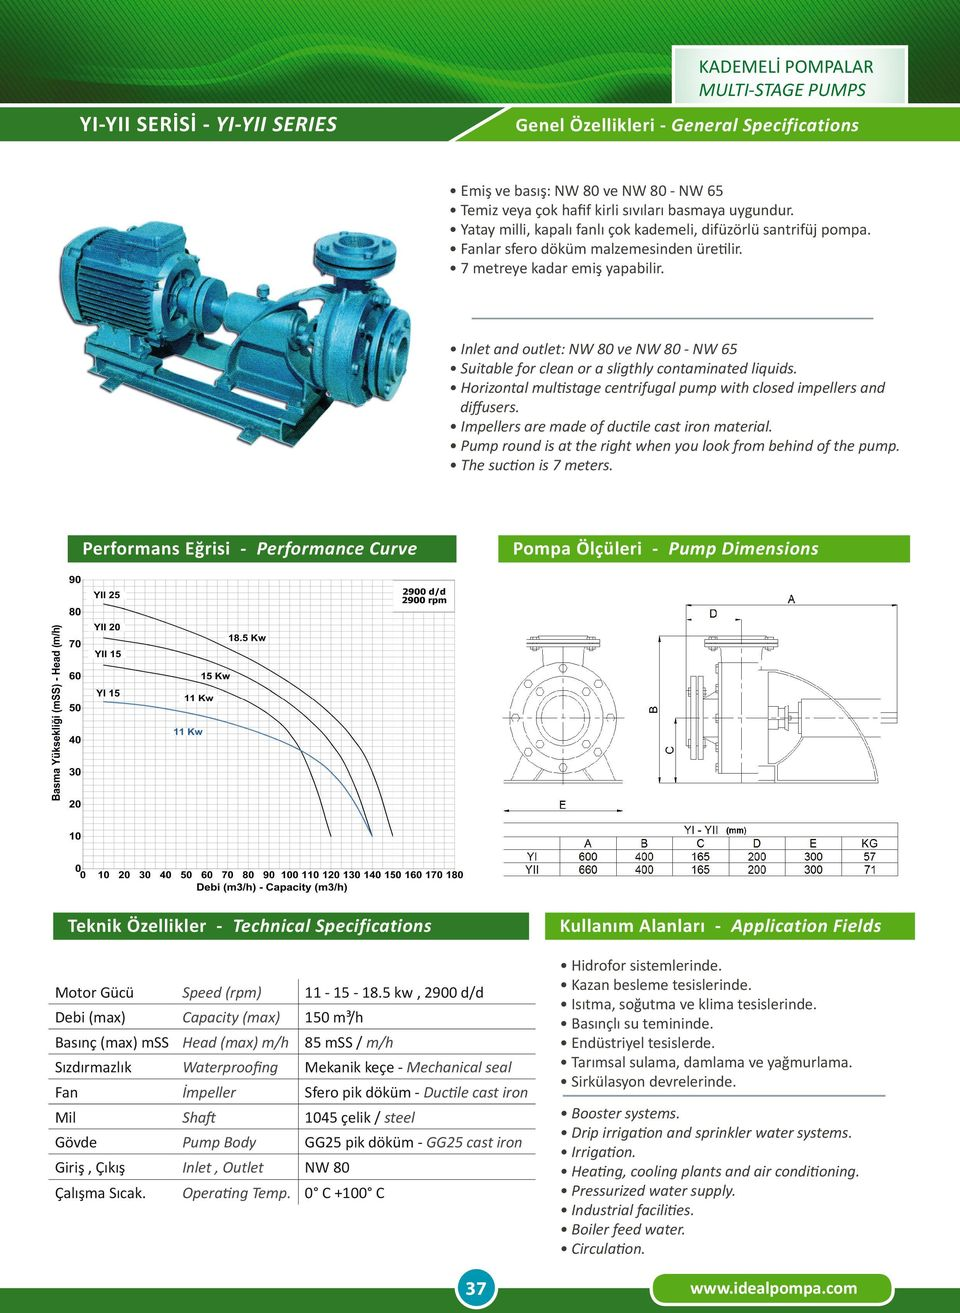 Horizontal multistage centrifugal pump with closed impellers and diffusers. Impellers are made of ductile cast iron material. Pump round is at the right when you look from behind of the pump.